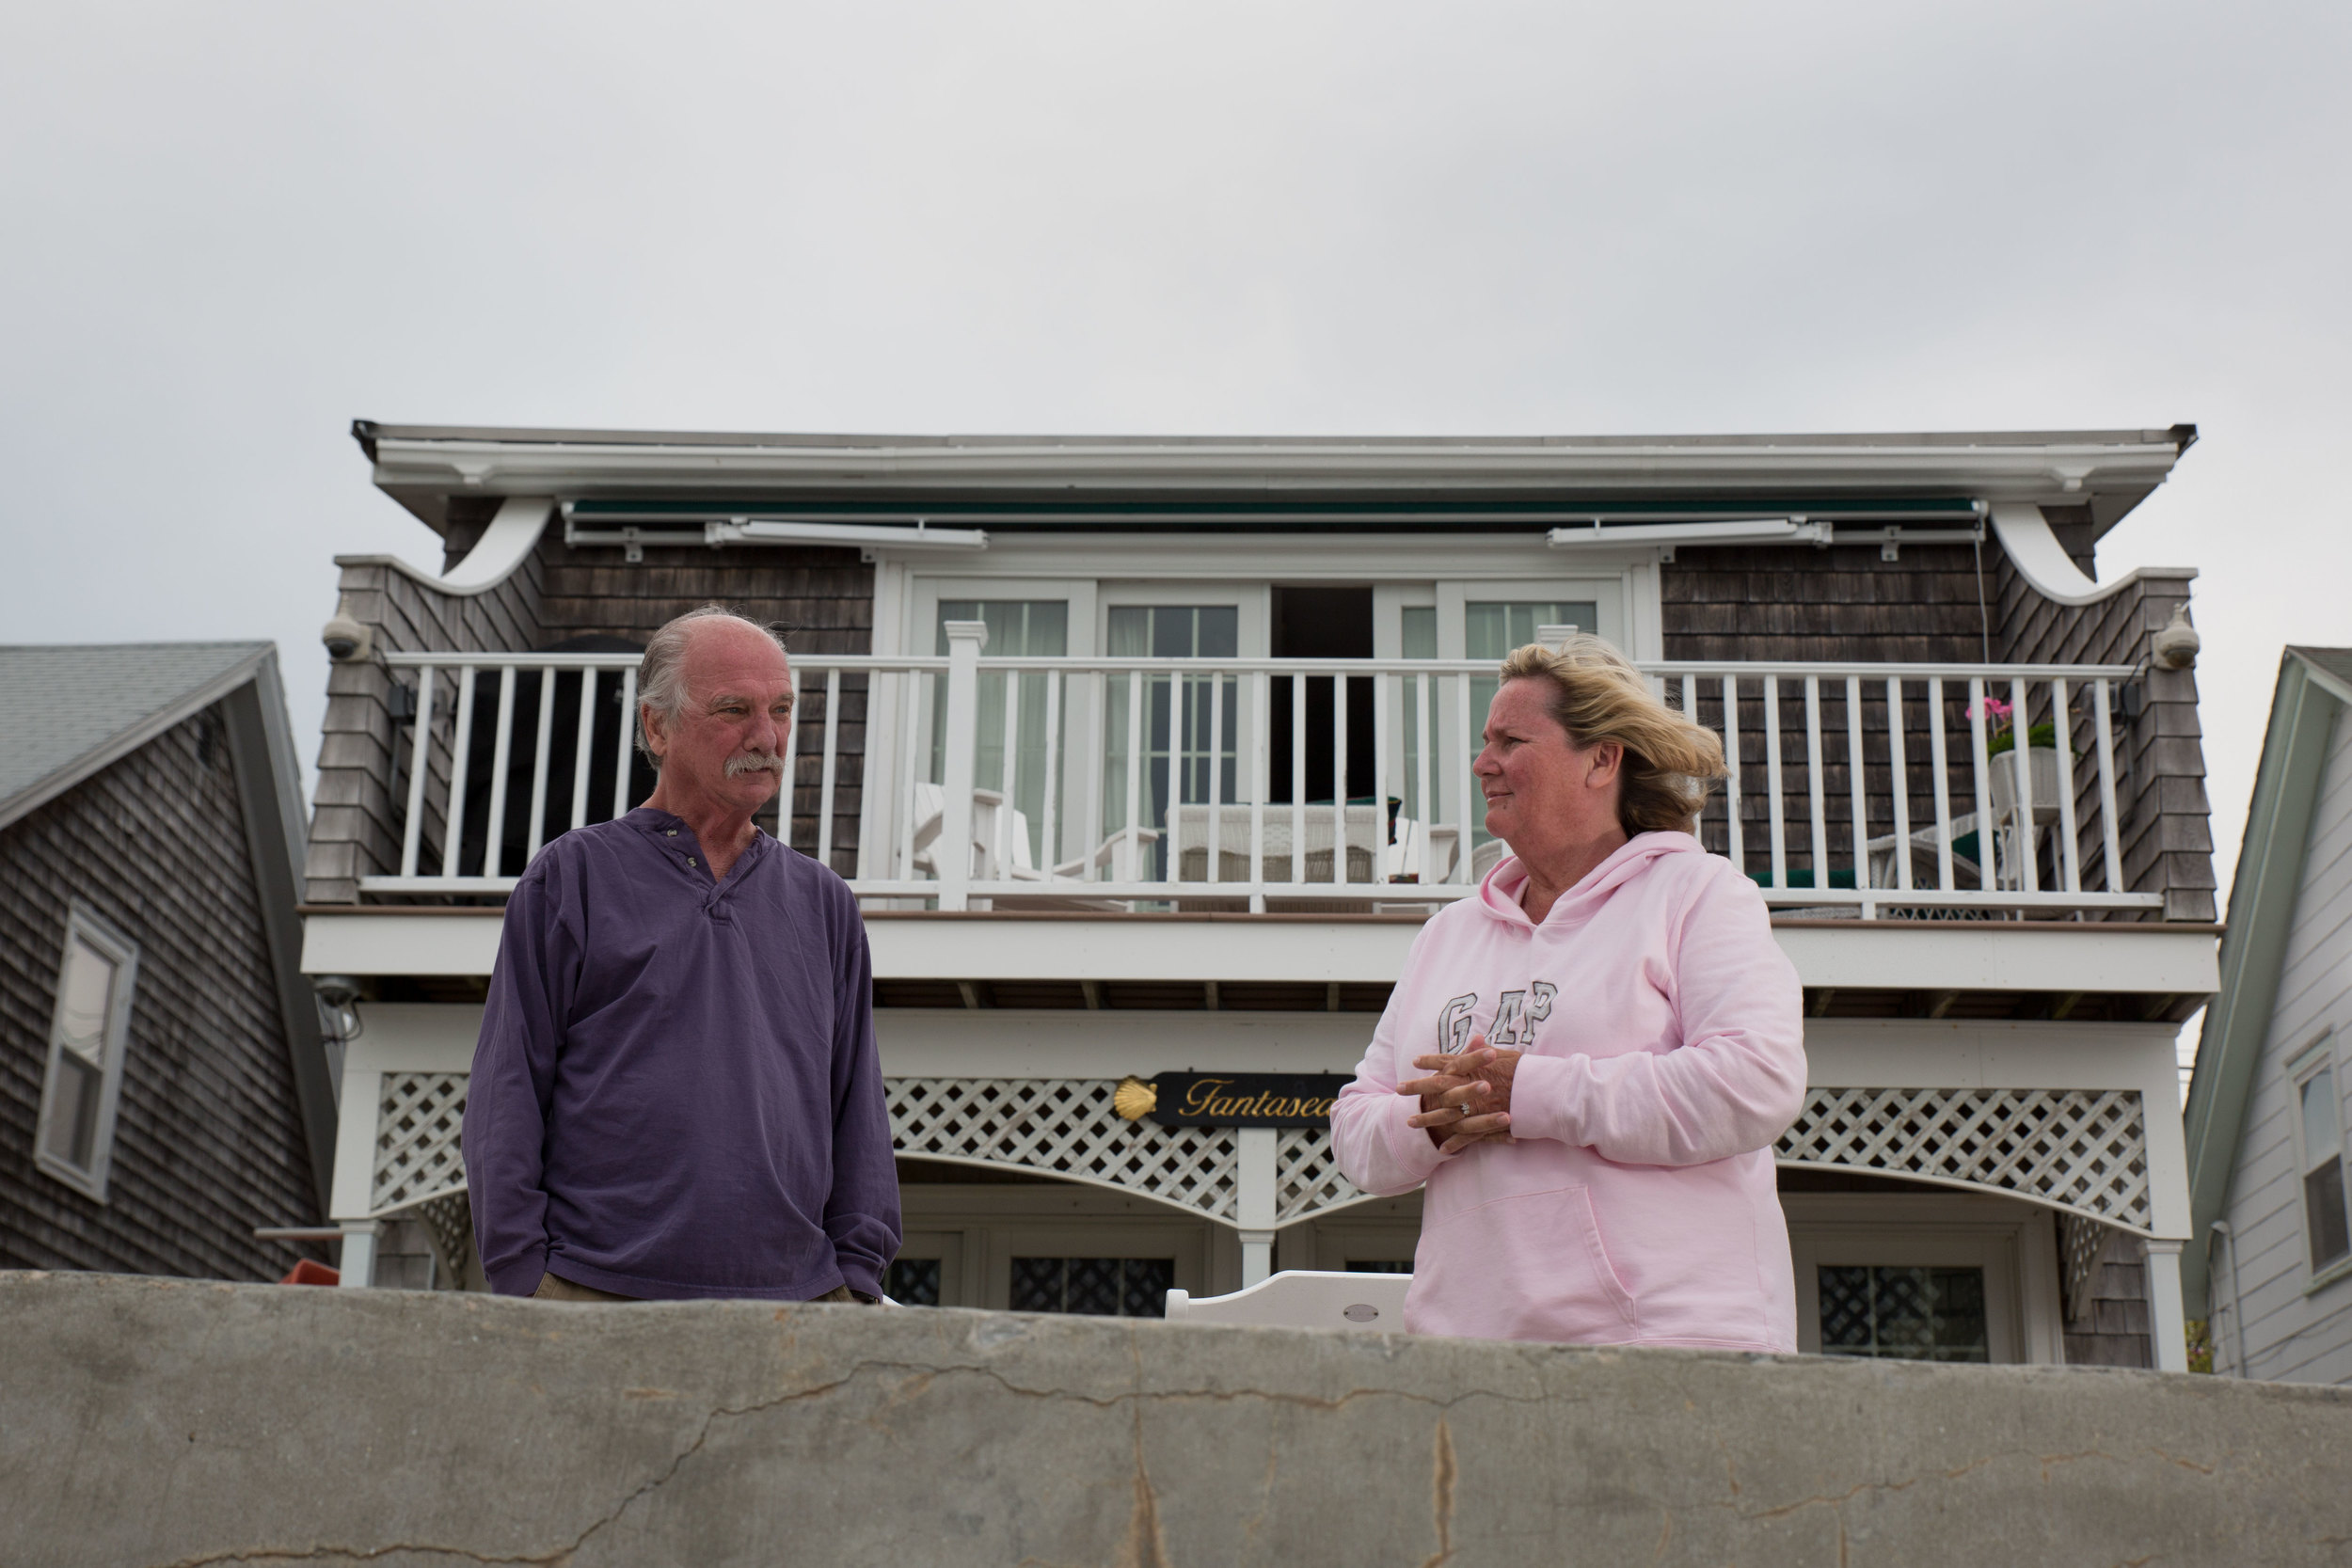 Dave and Chris Lazzaro have lived in their home on the water for decades. Over the past 50 years the home has sustained flood damage a half dozen times. Twice - in 1978 and 1991 - that damage was serious.